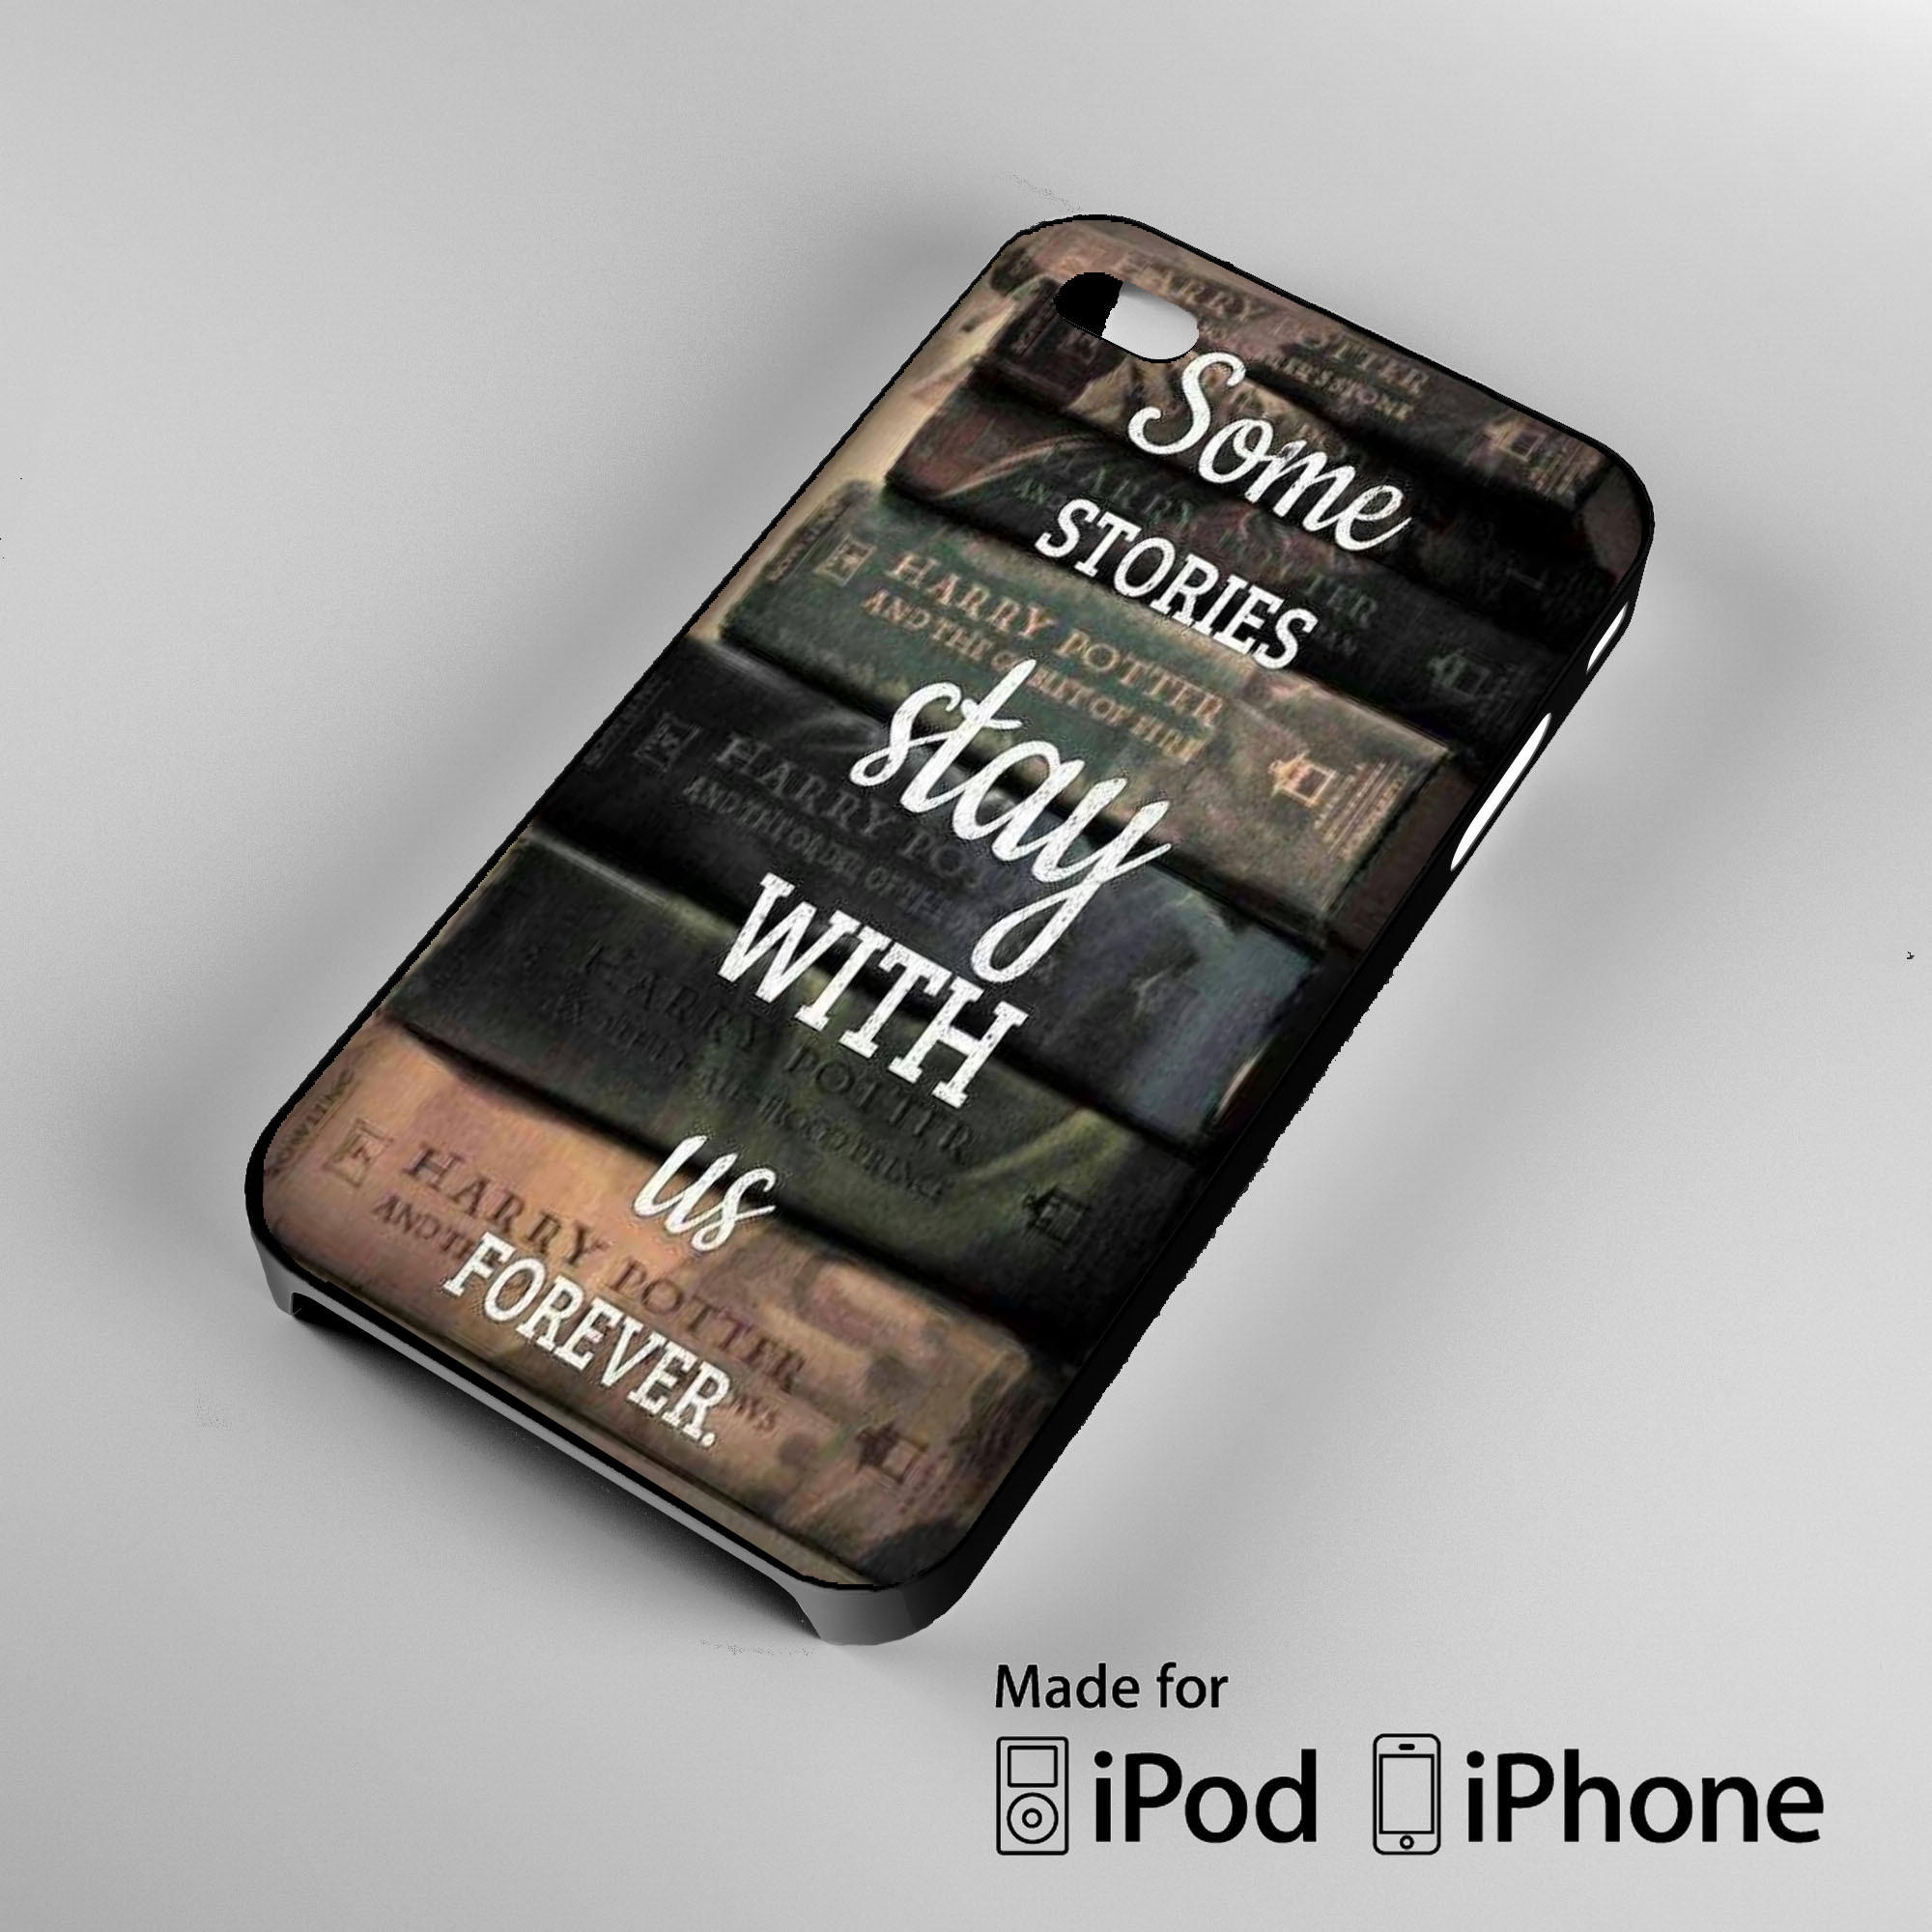 Harry Potter Old Books iPhone 4S 5S 5C 6 6Plus, iPod 4 5, LG G2 G3, Sony Z2 Case